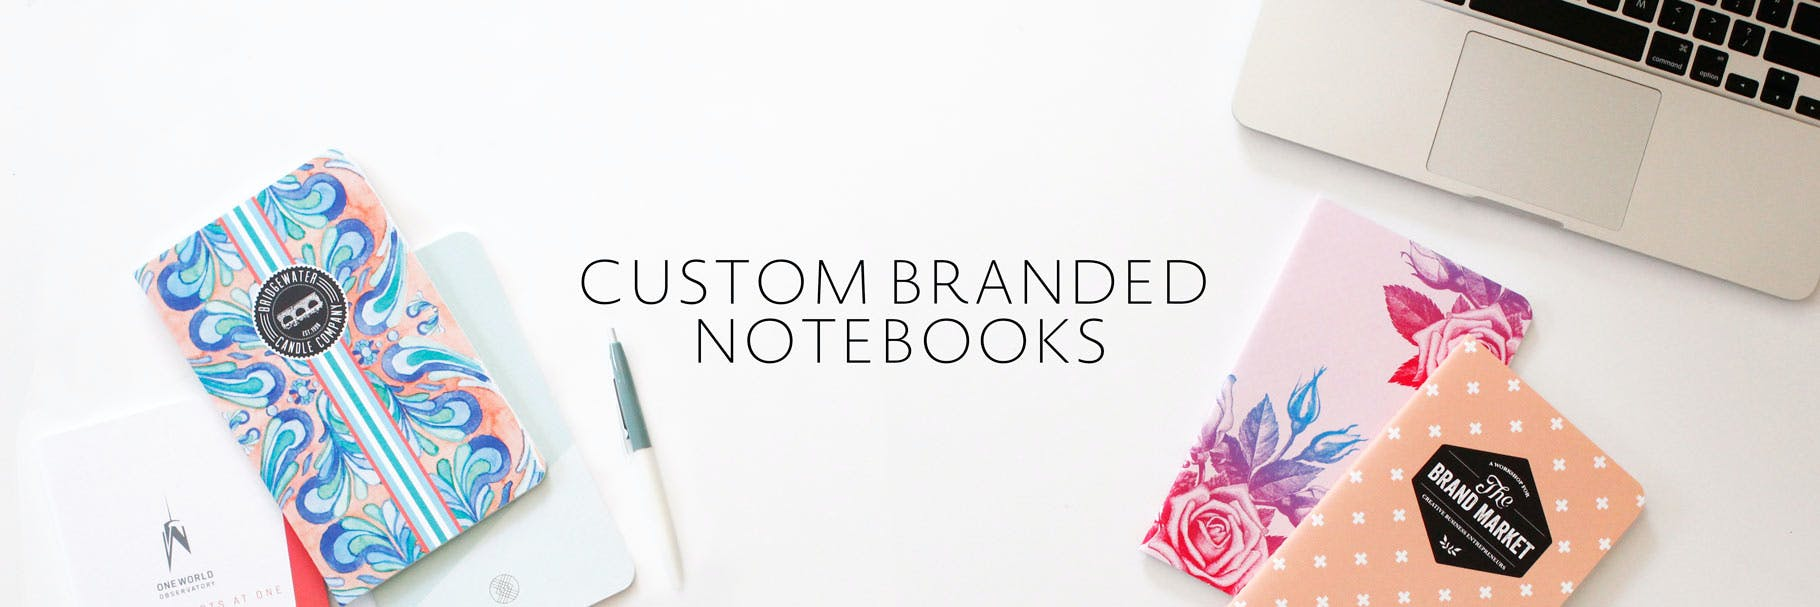 Custom branded notebooks for your company.